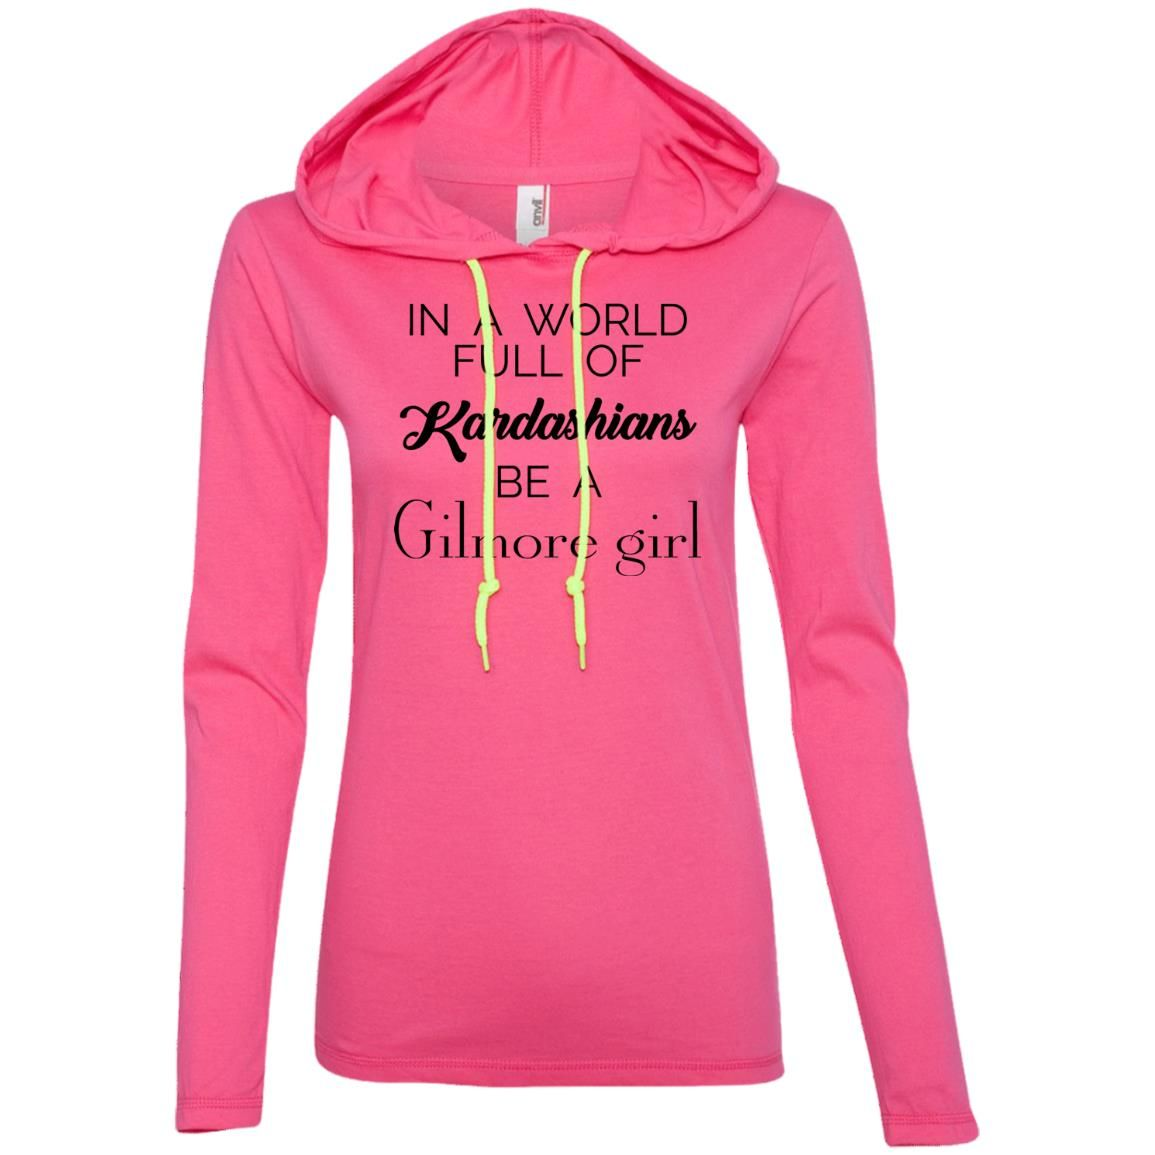 image 4 - In a World full of Kardashians Be a Gilmore Girl shirt